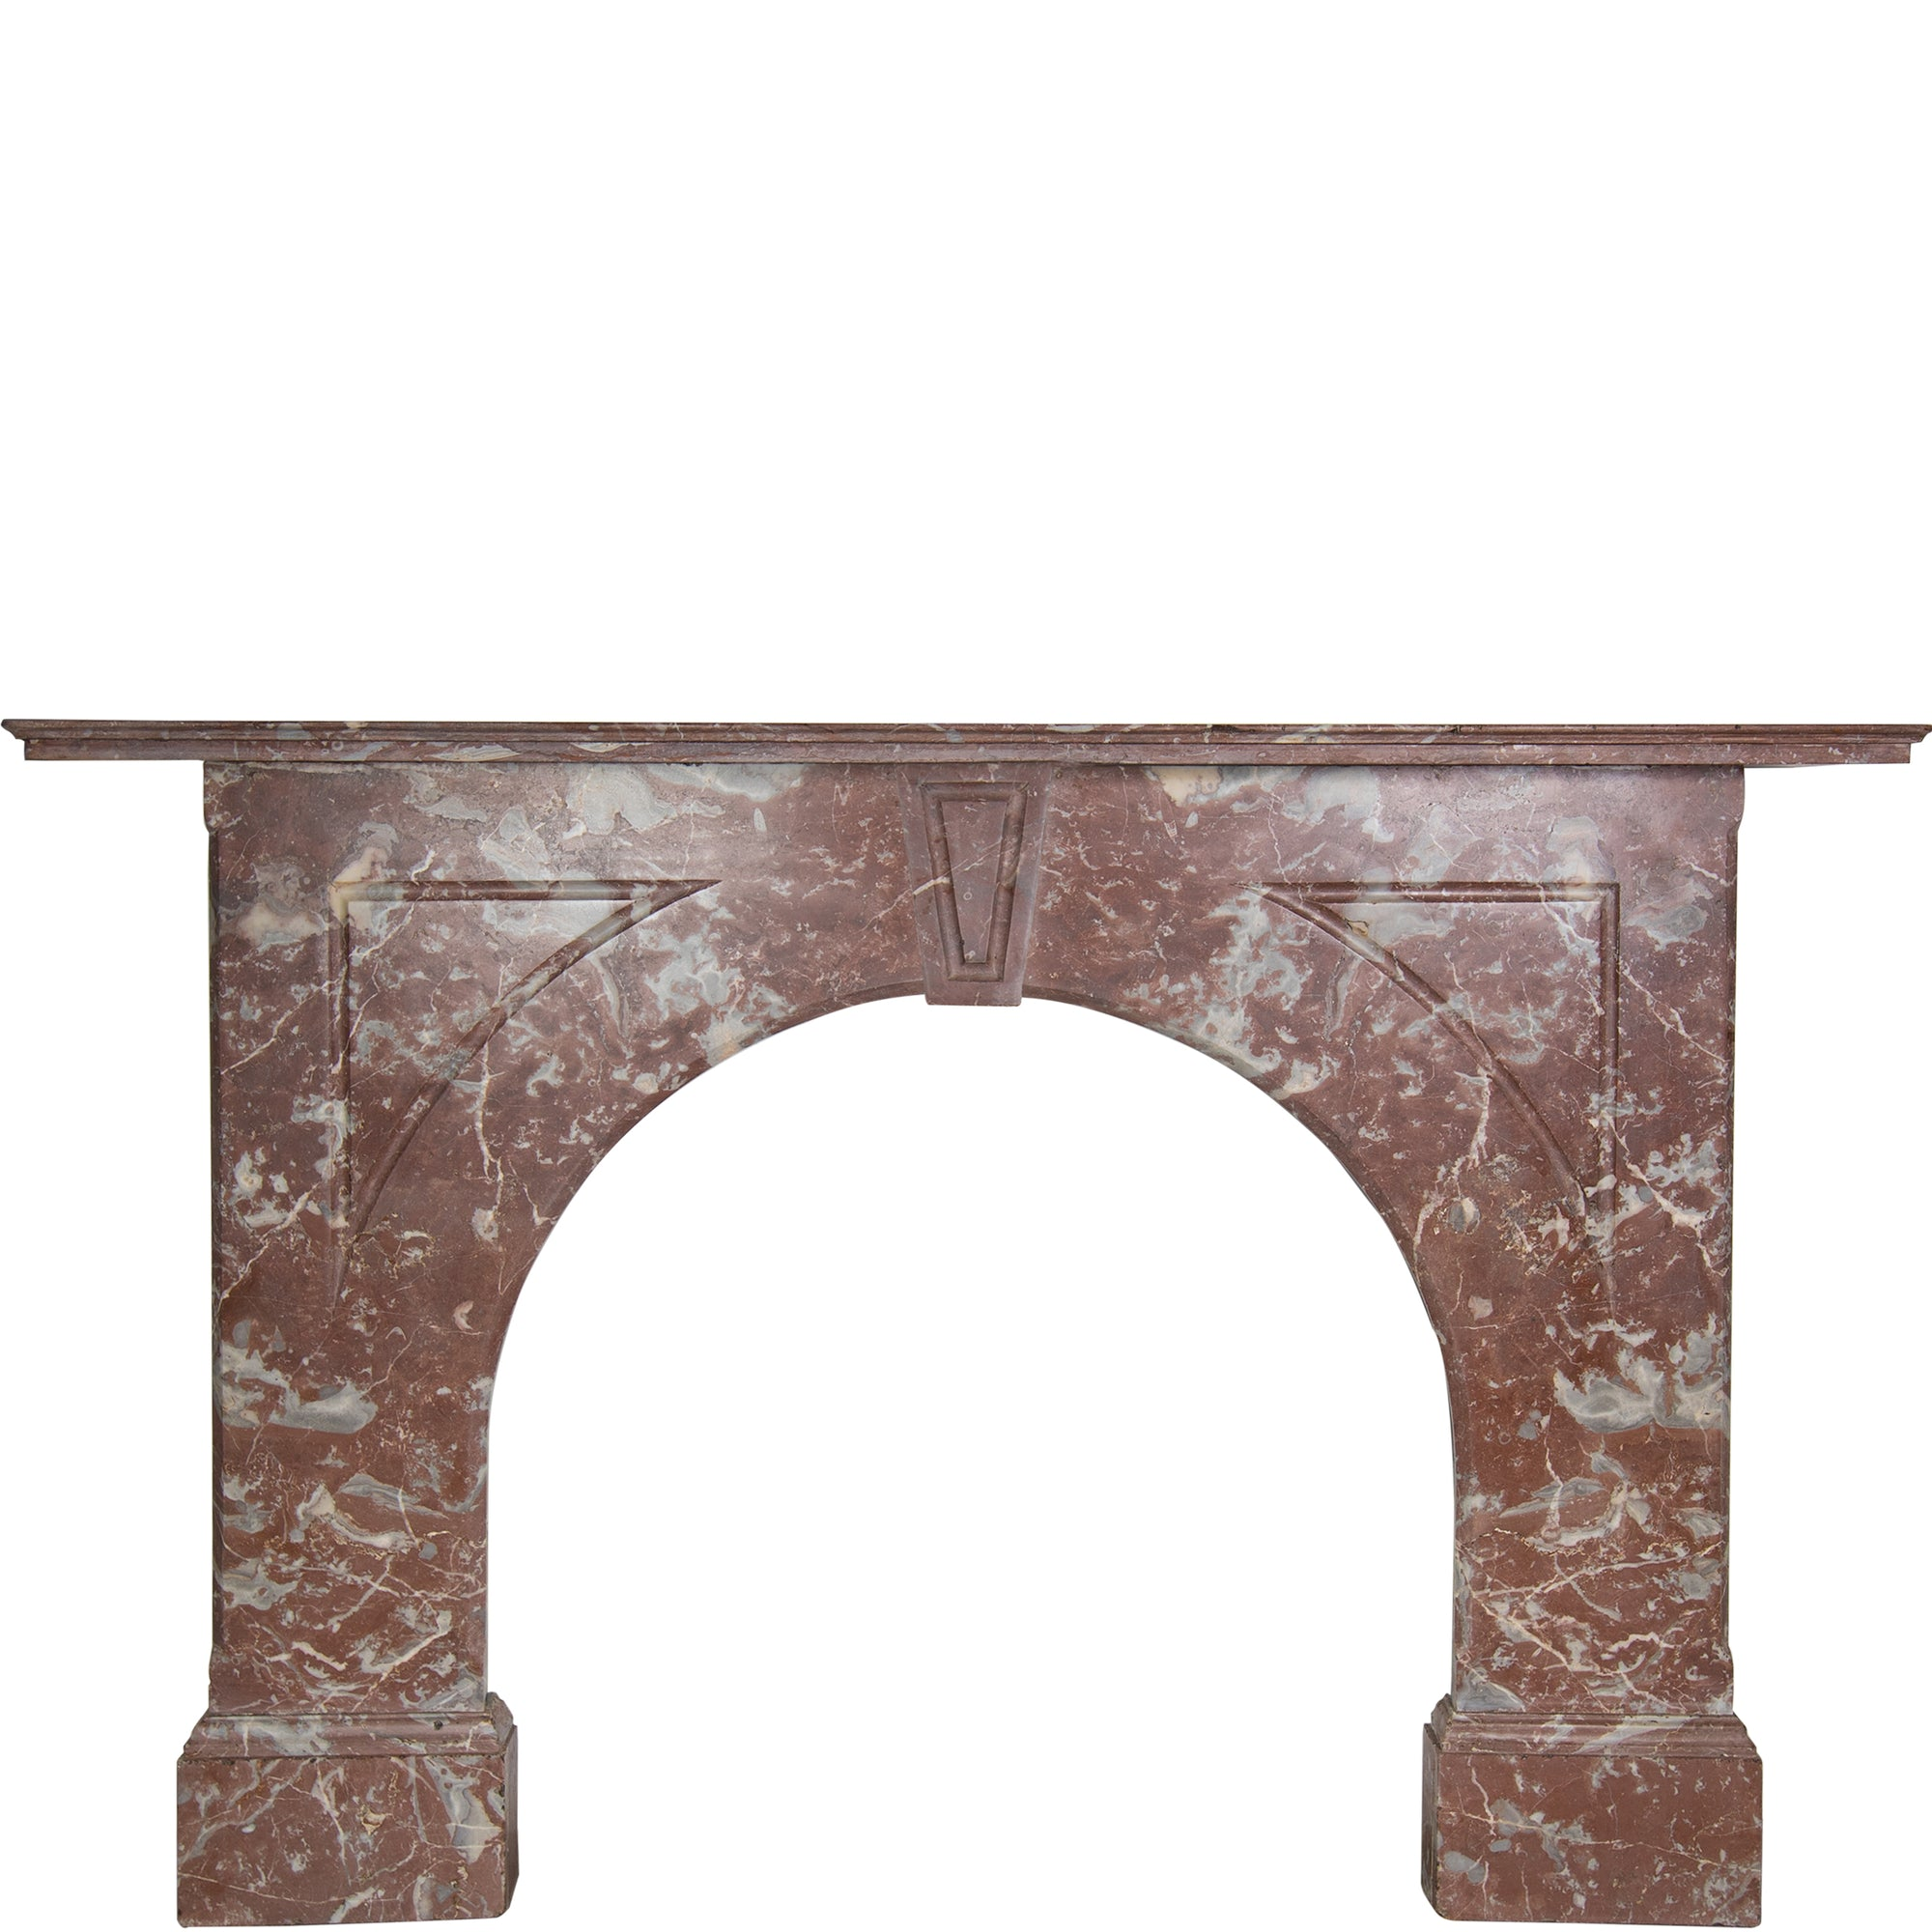 Antique Victorian Rouge Royal Marble Fireplace Surround - The Architectural Forum